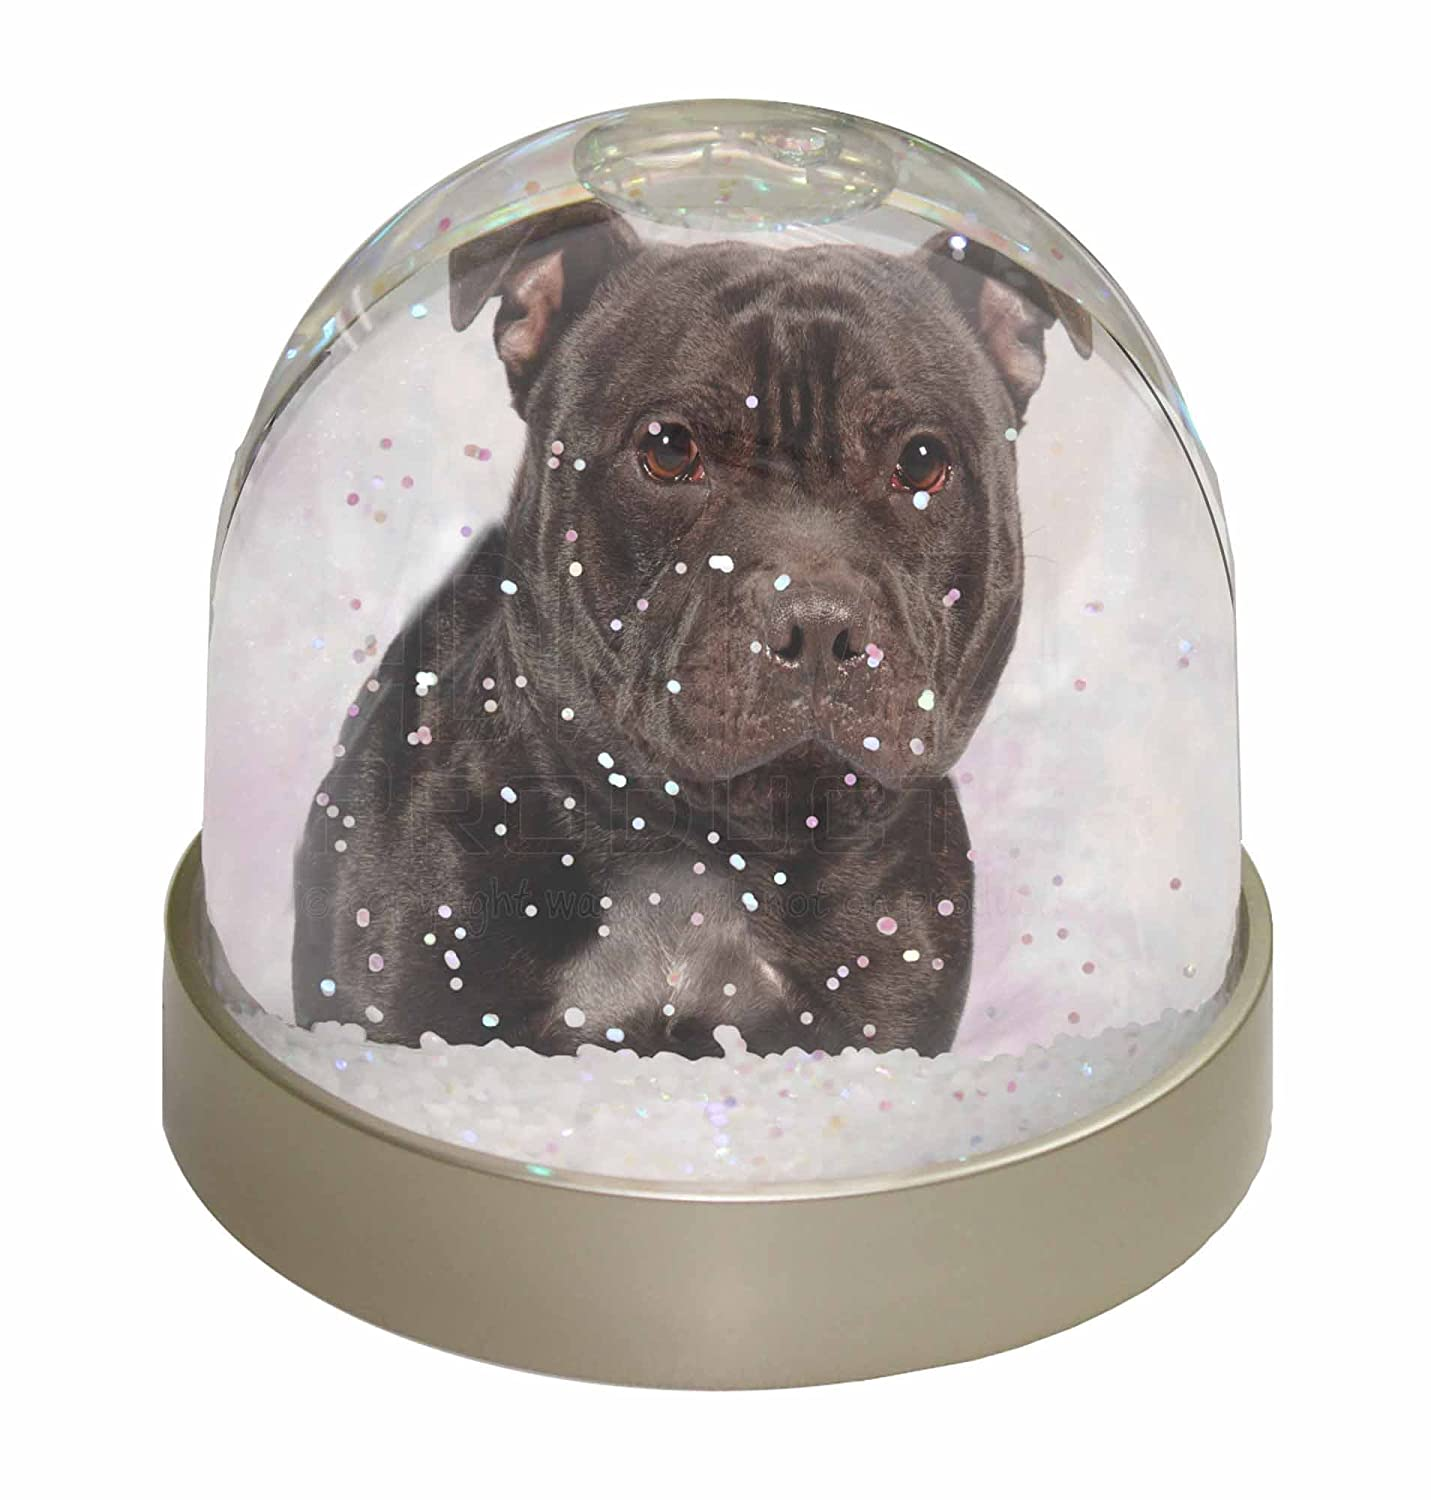 Advanta Staffordshire Bull Terrier Snow Dome Globe Waterball Gift, Multi-Colour, 9.2 x 9.2 x 8 cm Advanta Products AD-SBT4GL